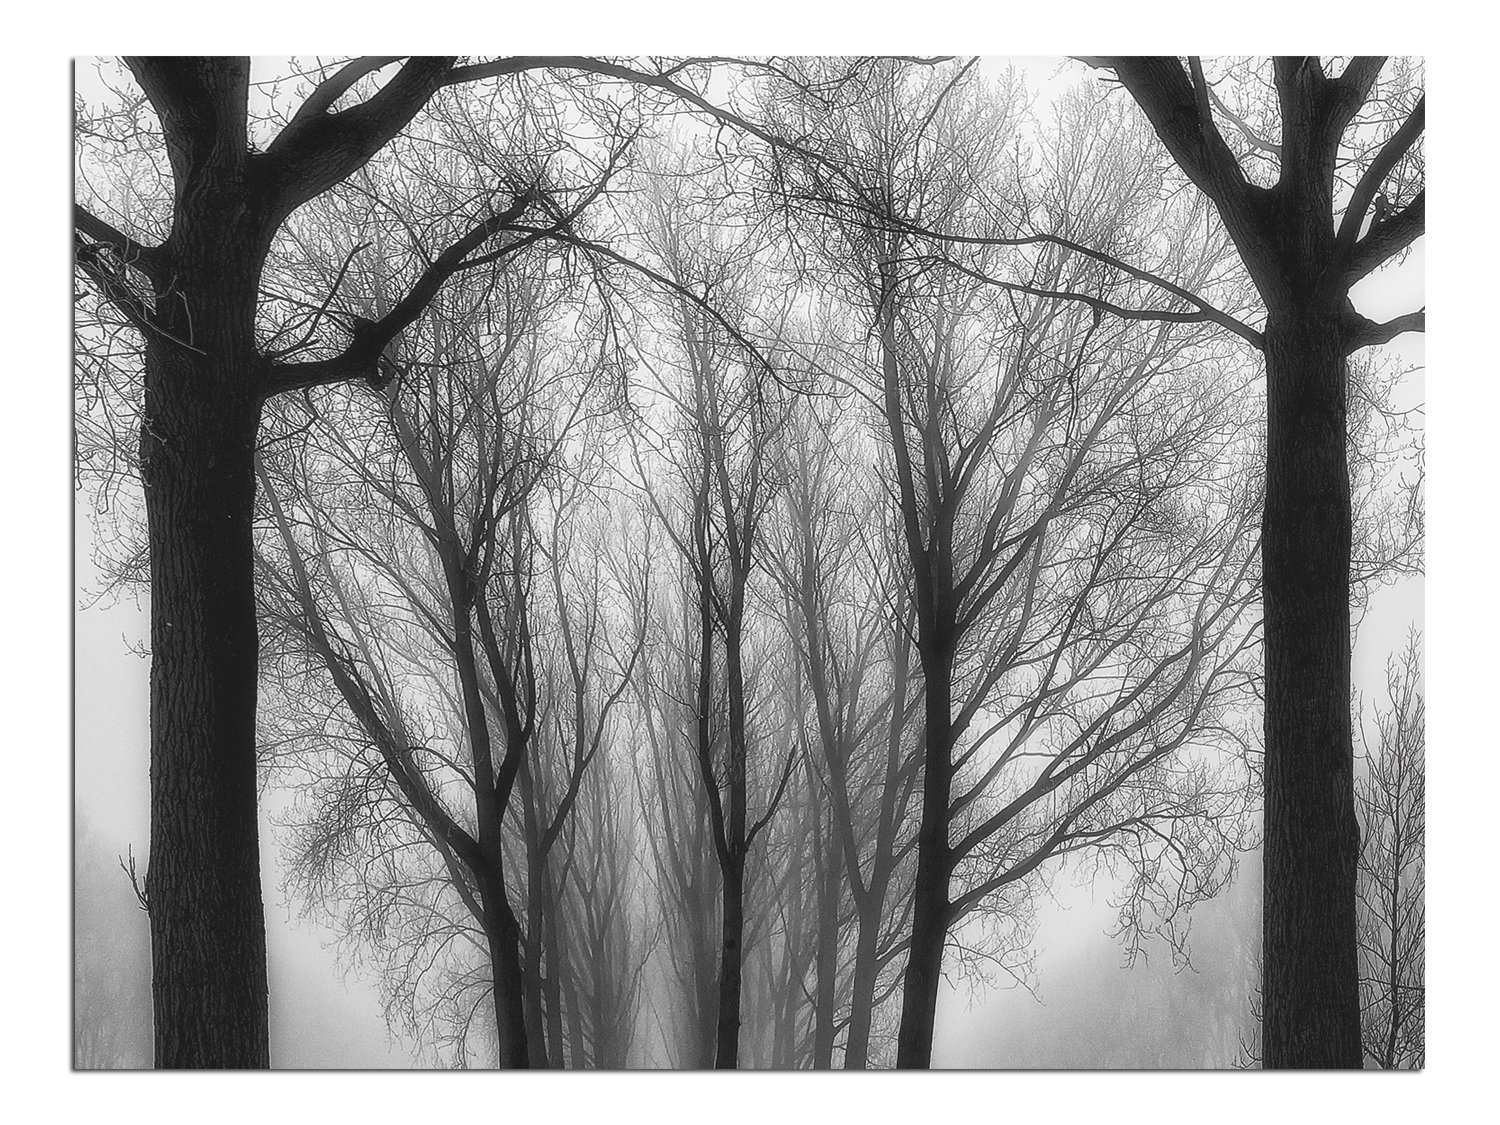 JP London Solvent Free Print PAPXS1X811951 Comes Winter Branches Forest Shadow Black White Ready to Frame Poster Wall Art 8 by 10